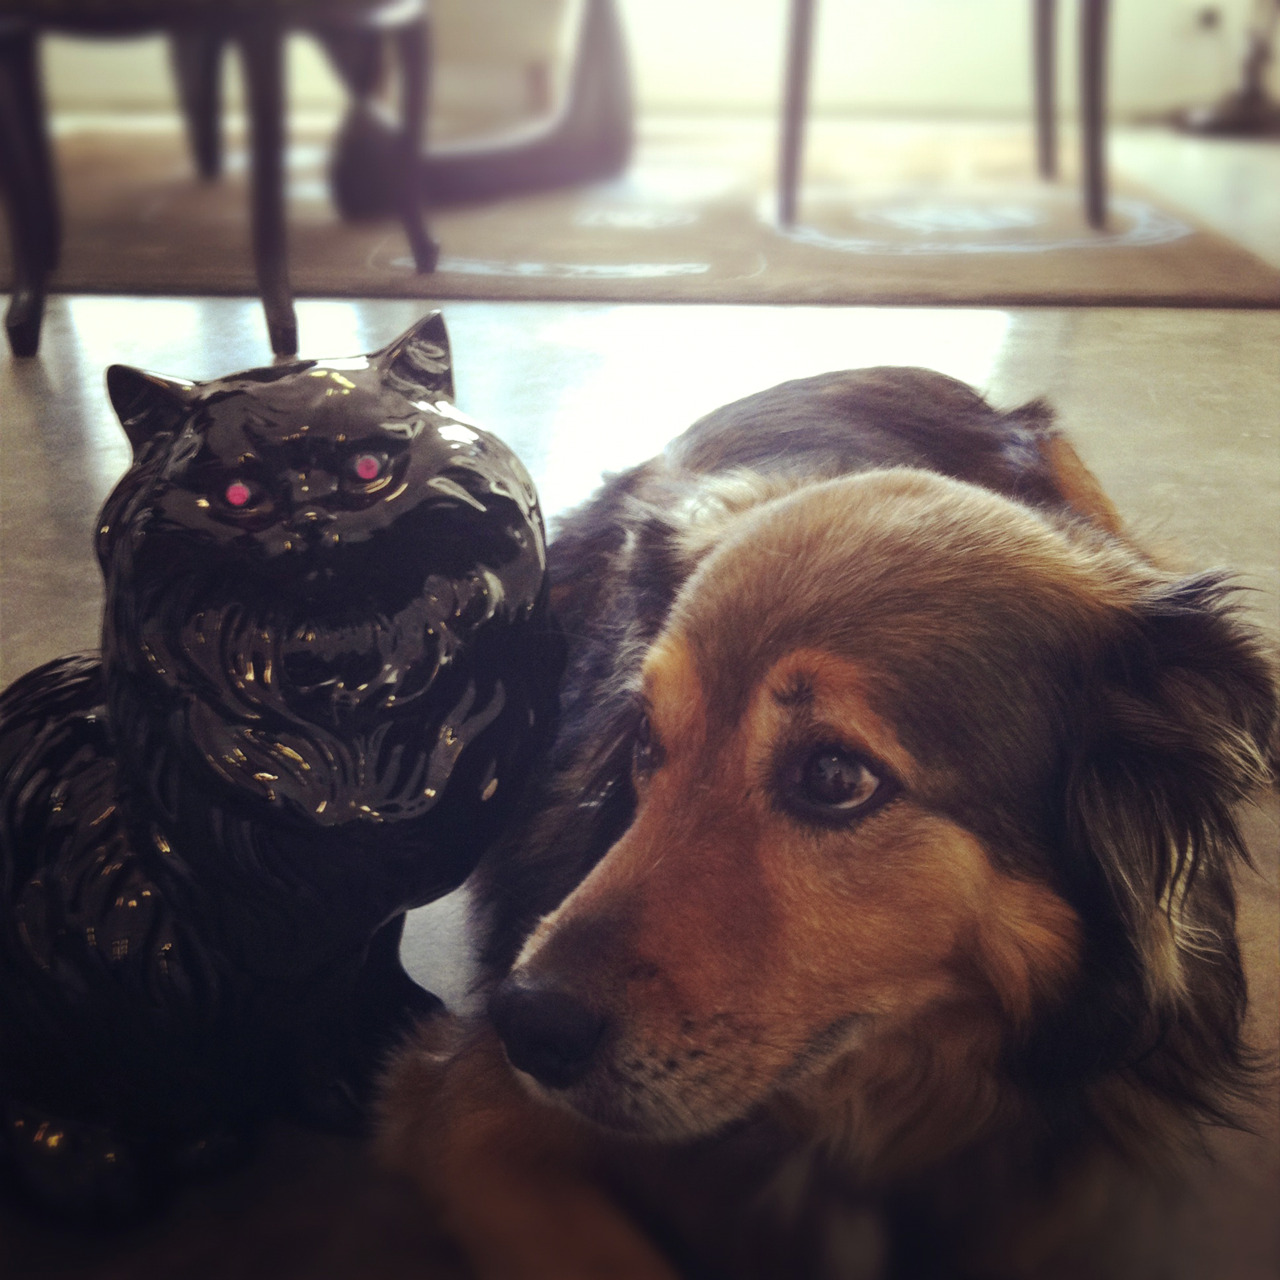 Lucca (our dog at work) looks so out of sorts with that black monstrosity sitting next to her.